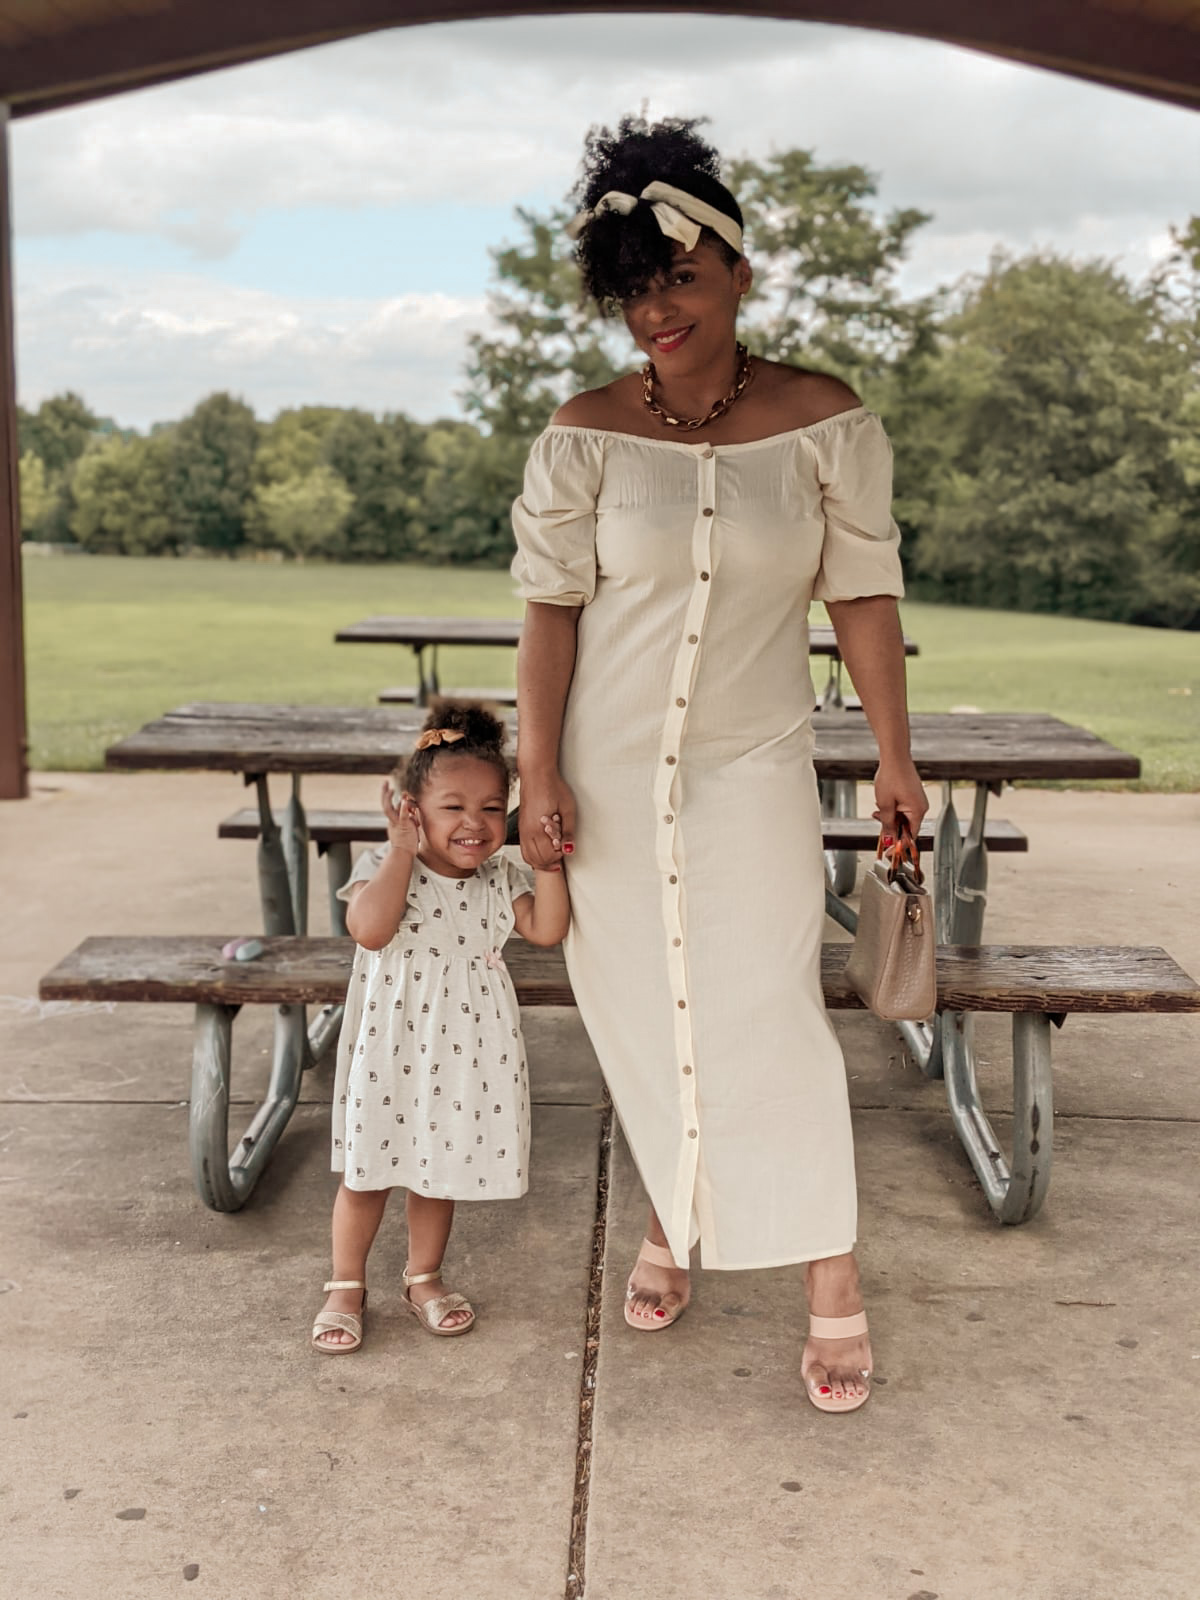 An Unintentional Mommy and Me Summer Outfit